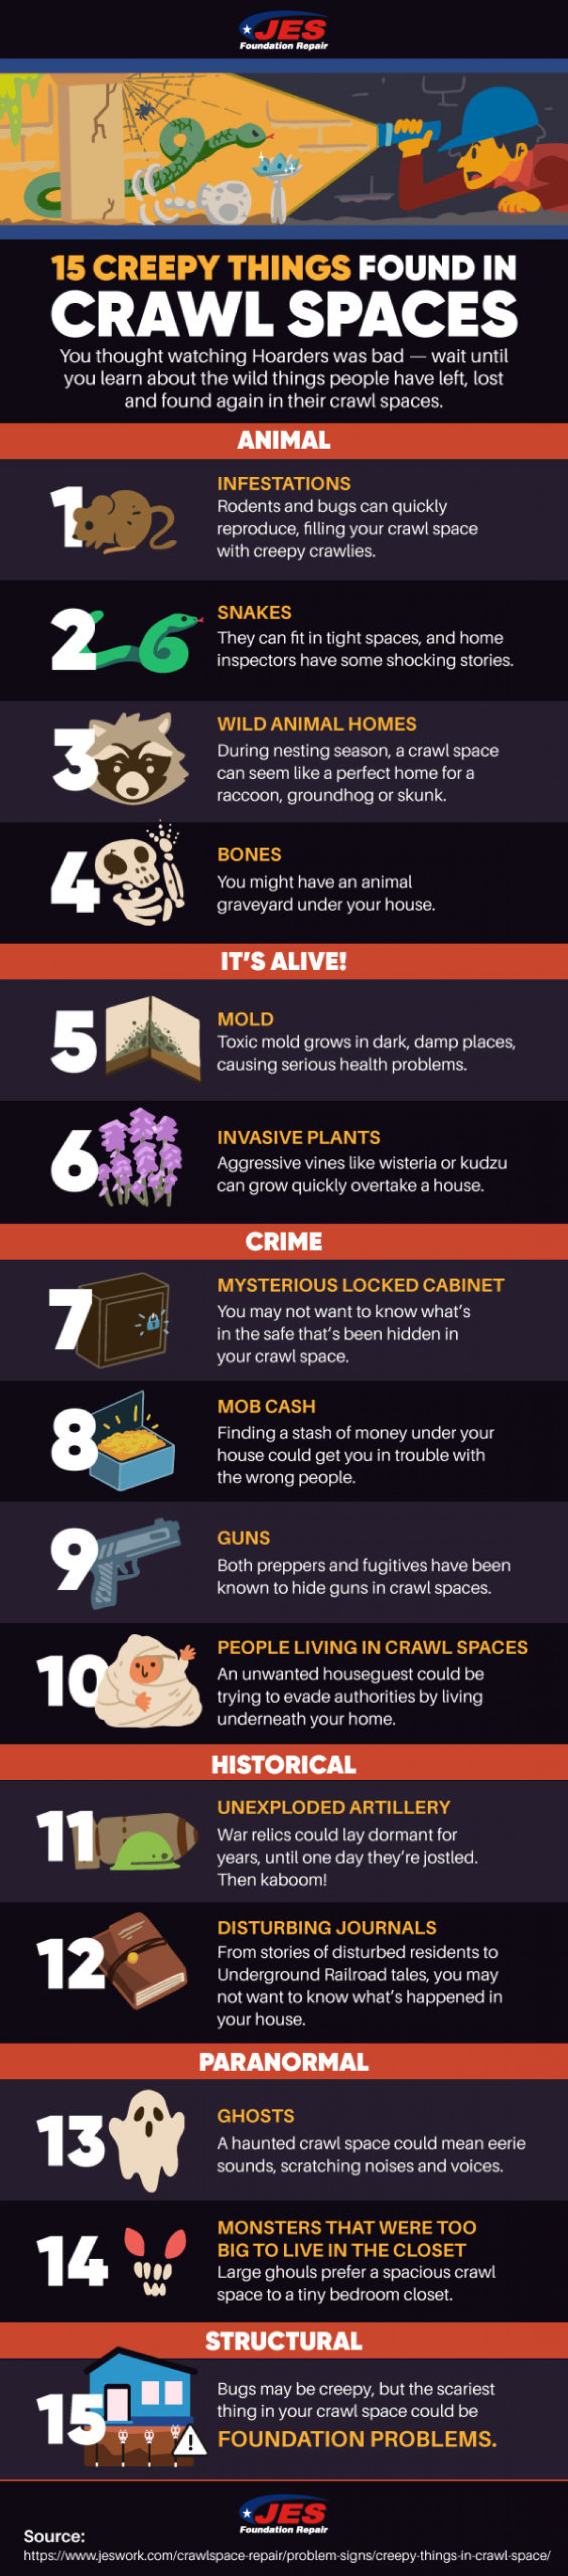 15 Creepy Things Found In Crawl Spaces Infographic